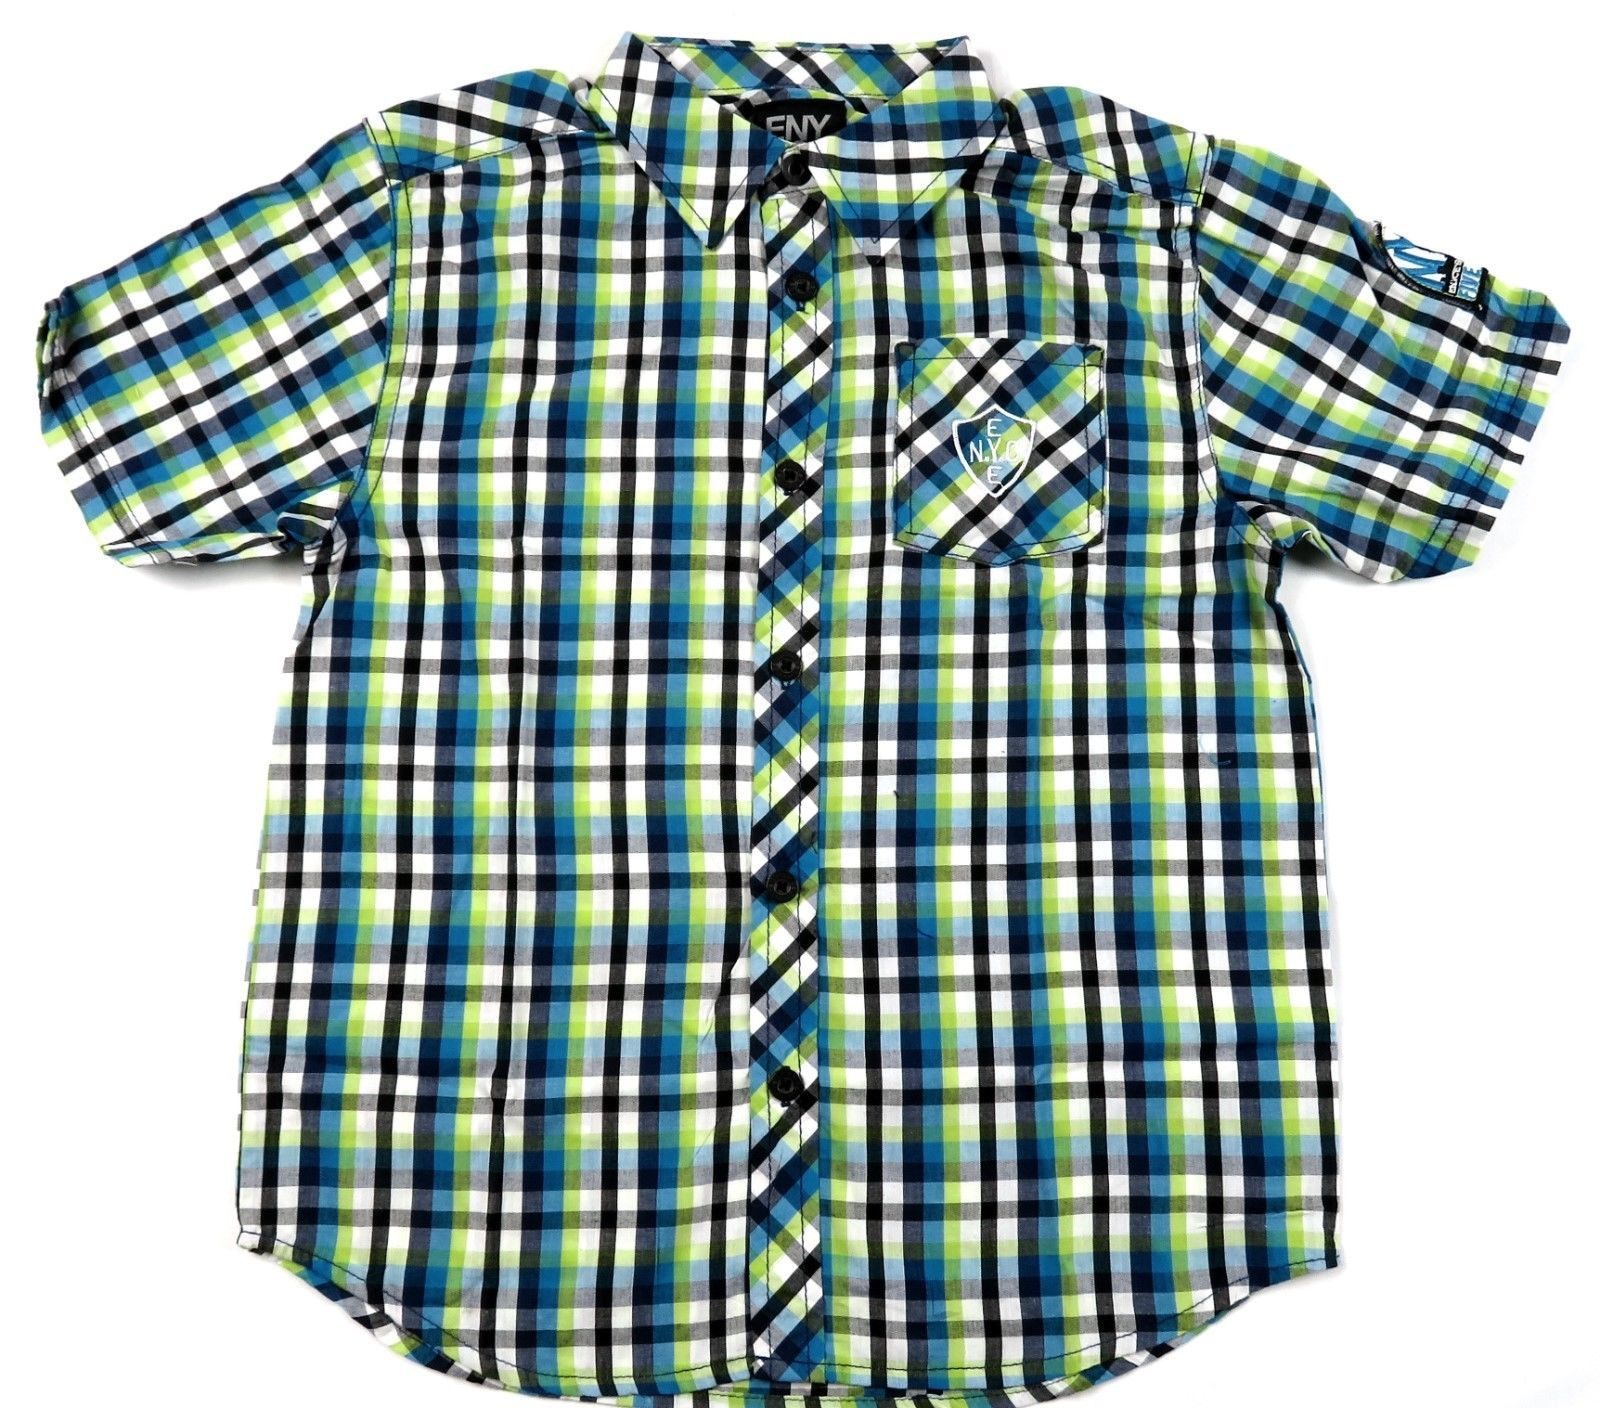 Boy's 4-7x Shirt ENYCE Button Front Woven Short Sleeve Bright Turquoise NEW